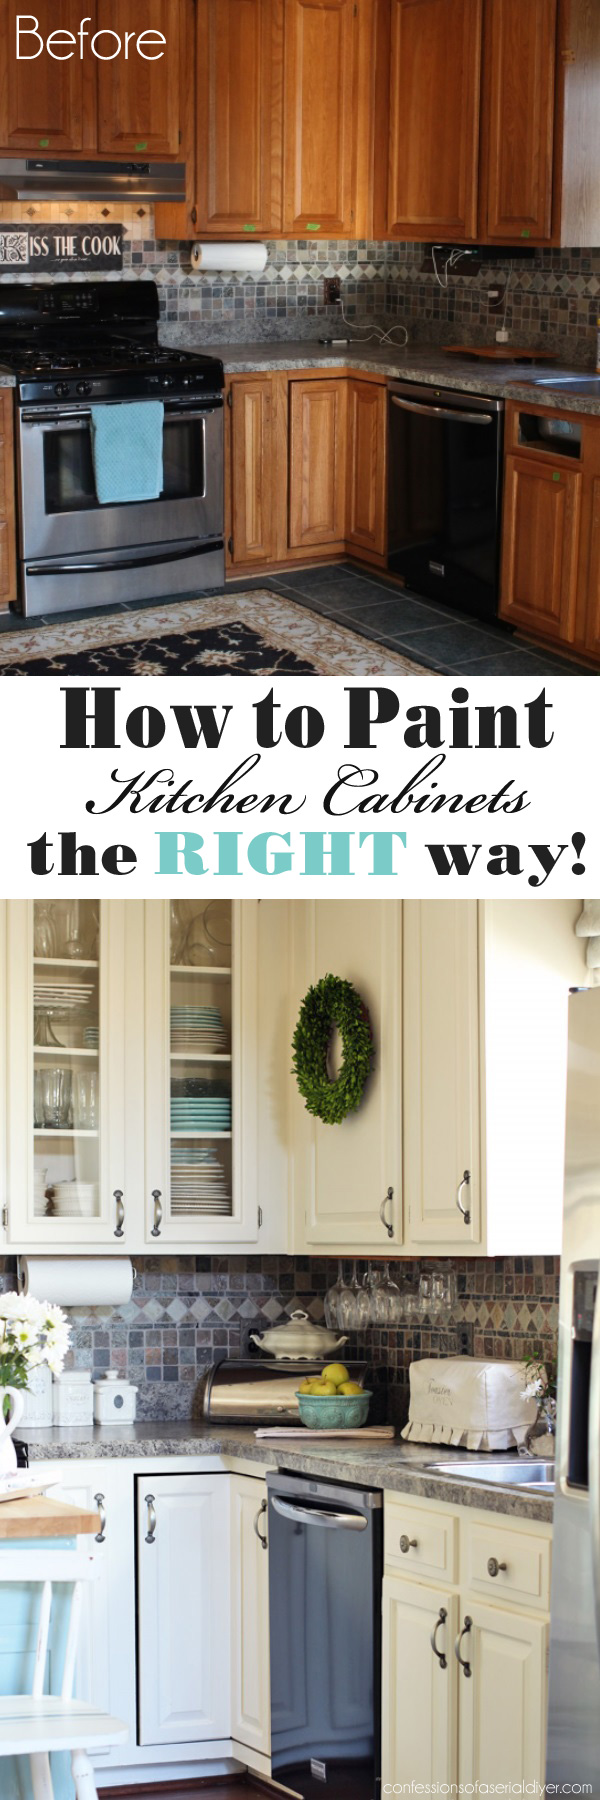 how to paint kitchen cabinets a step by step guide kitchen cabinet painting How to Paint Kitchen Cabinets the RIGHT way from Confessions of a Serial Do it